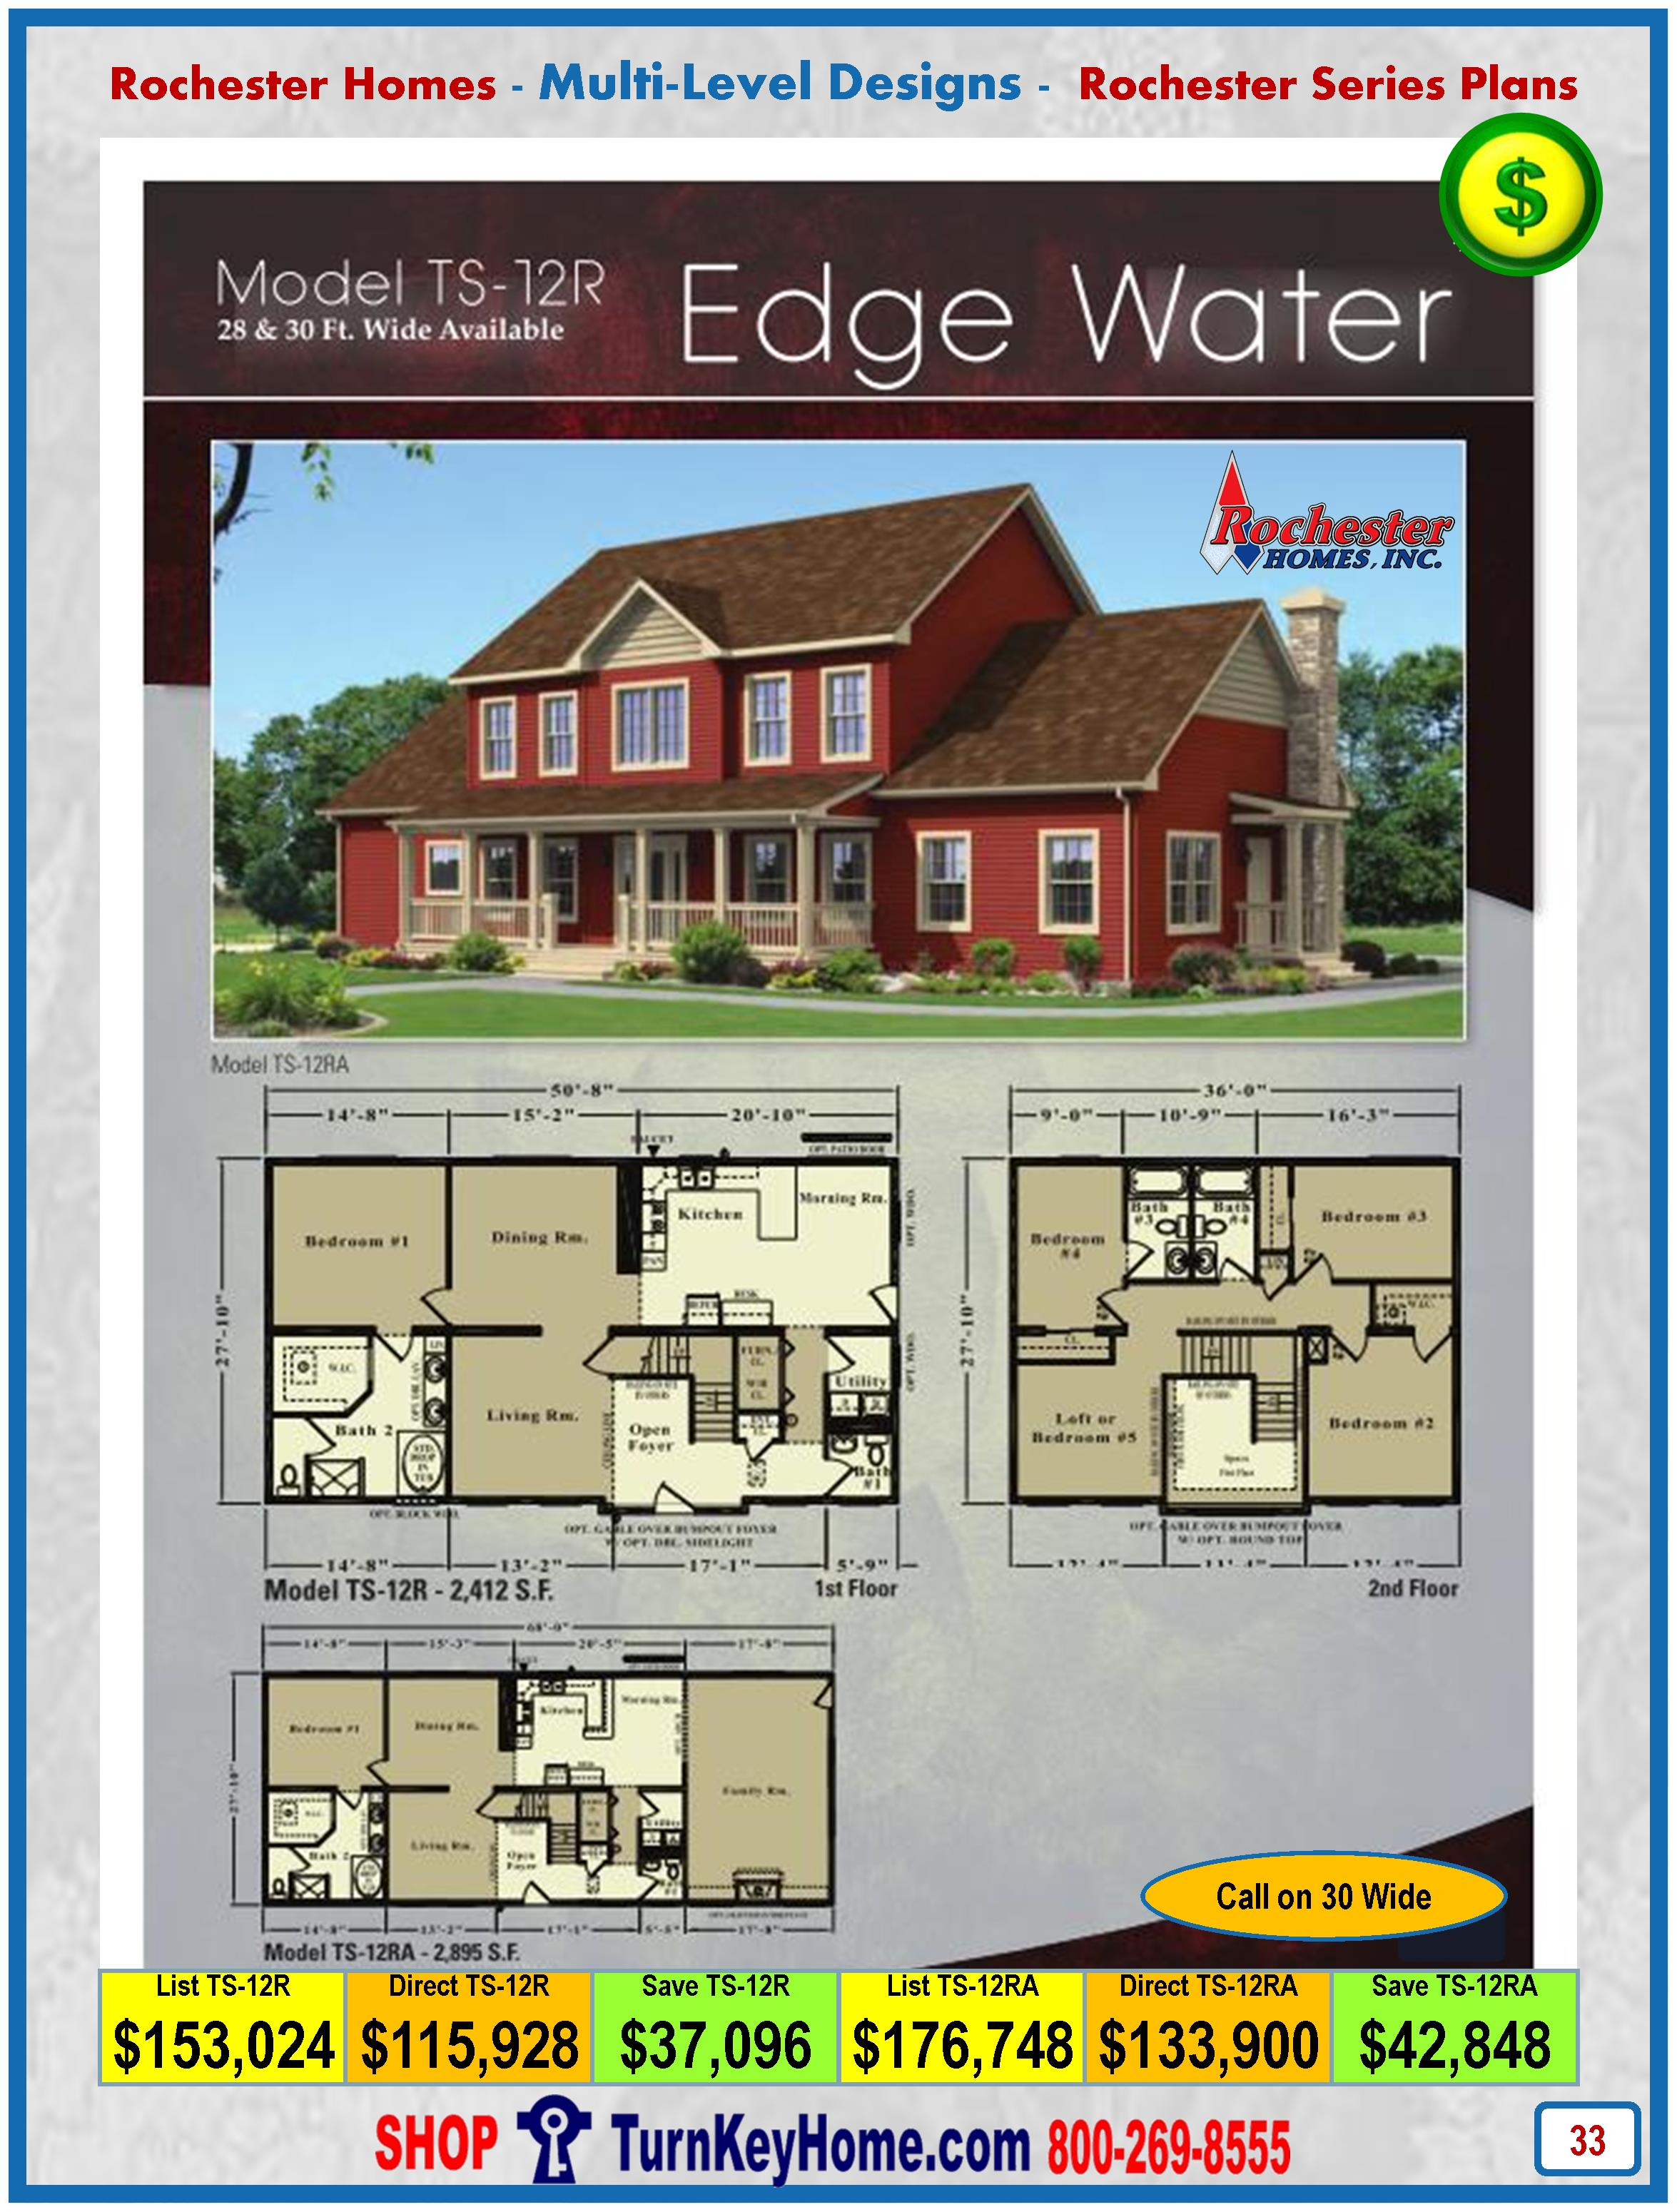 modular home designs and prices. Modular Home Rochester Homes Two Story Edgewater TS12R  EDGE WATER Plan Price